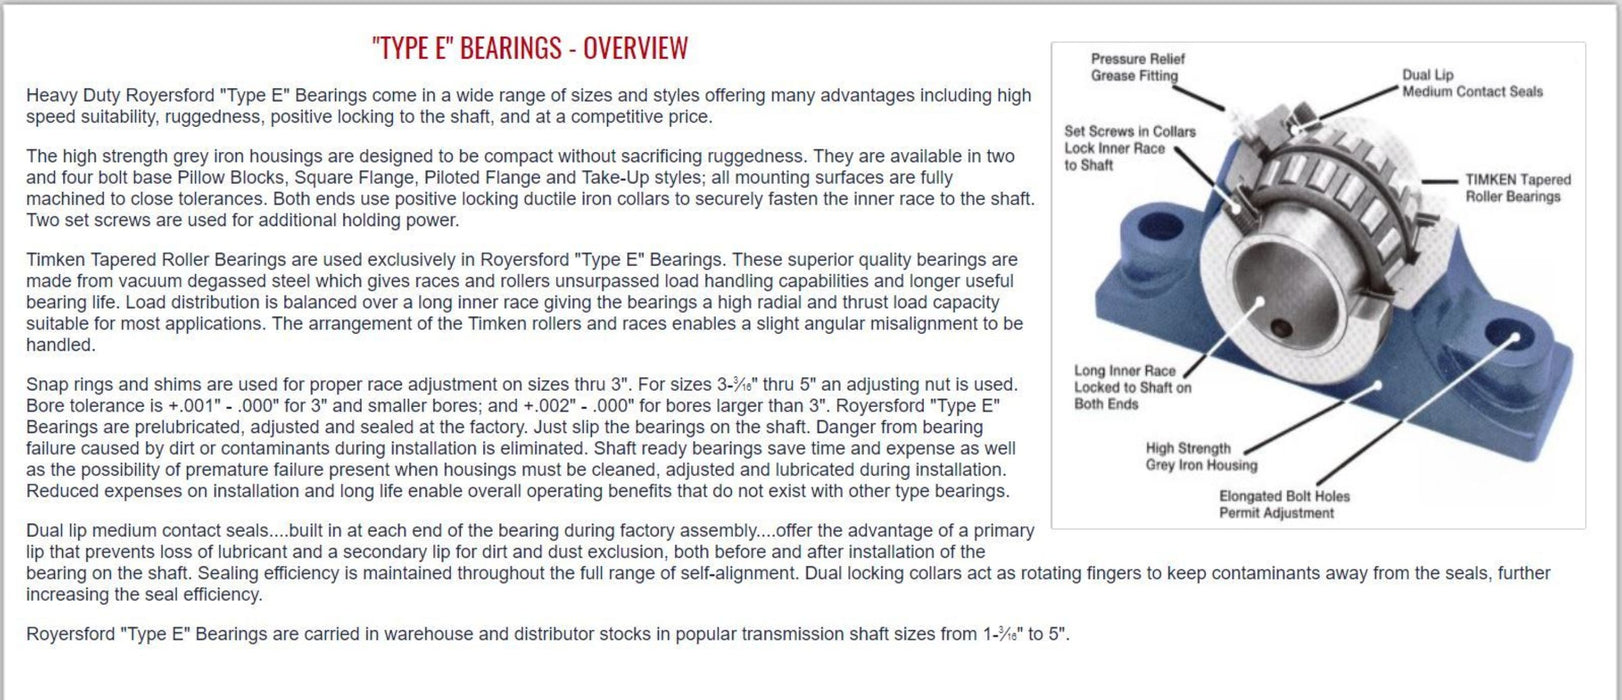 20-04-0300, ROYERSFORD TYPE E 4-Bolt Pillow Block Bearing, 3 with Timken Tapered Roller Bearings